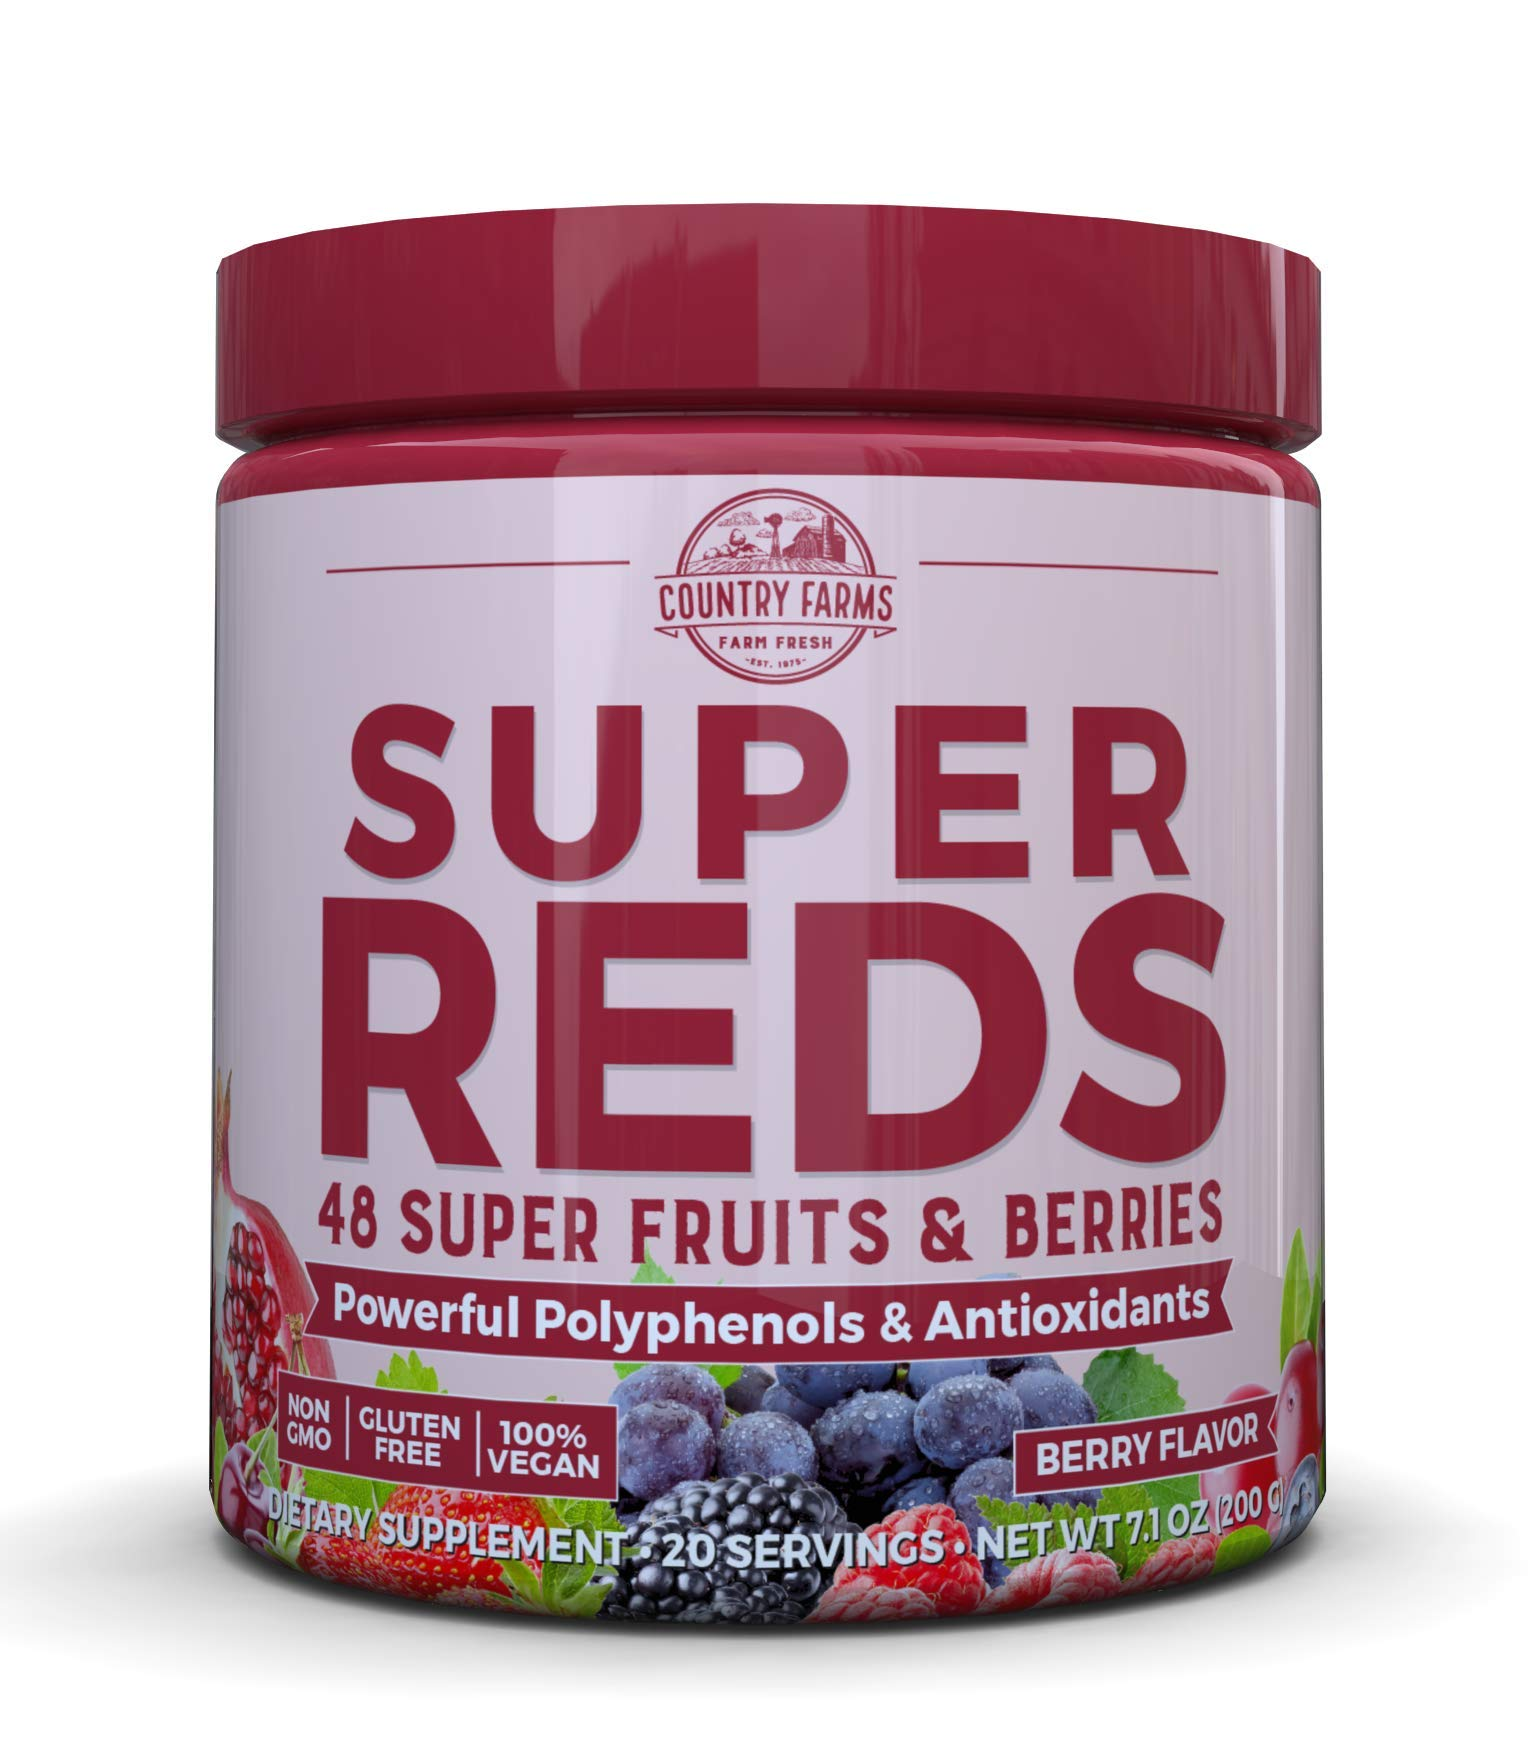 Country Farms Super Reds Energizing Polyphenol Superfood, Antioxidants, Drink Mix, 20 Servings by Country Farms